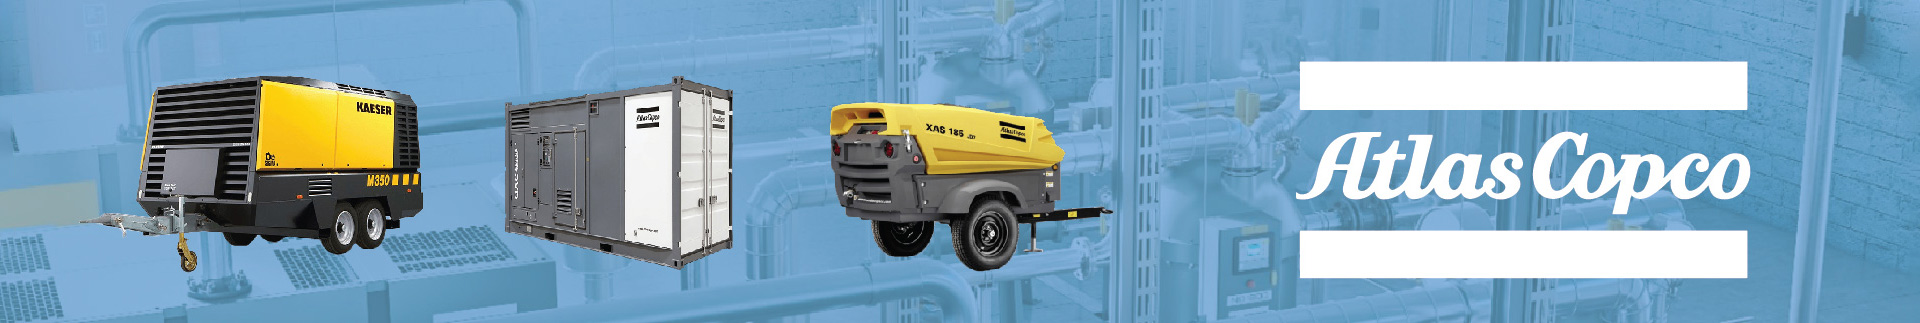 Atlas copco-02-web